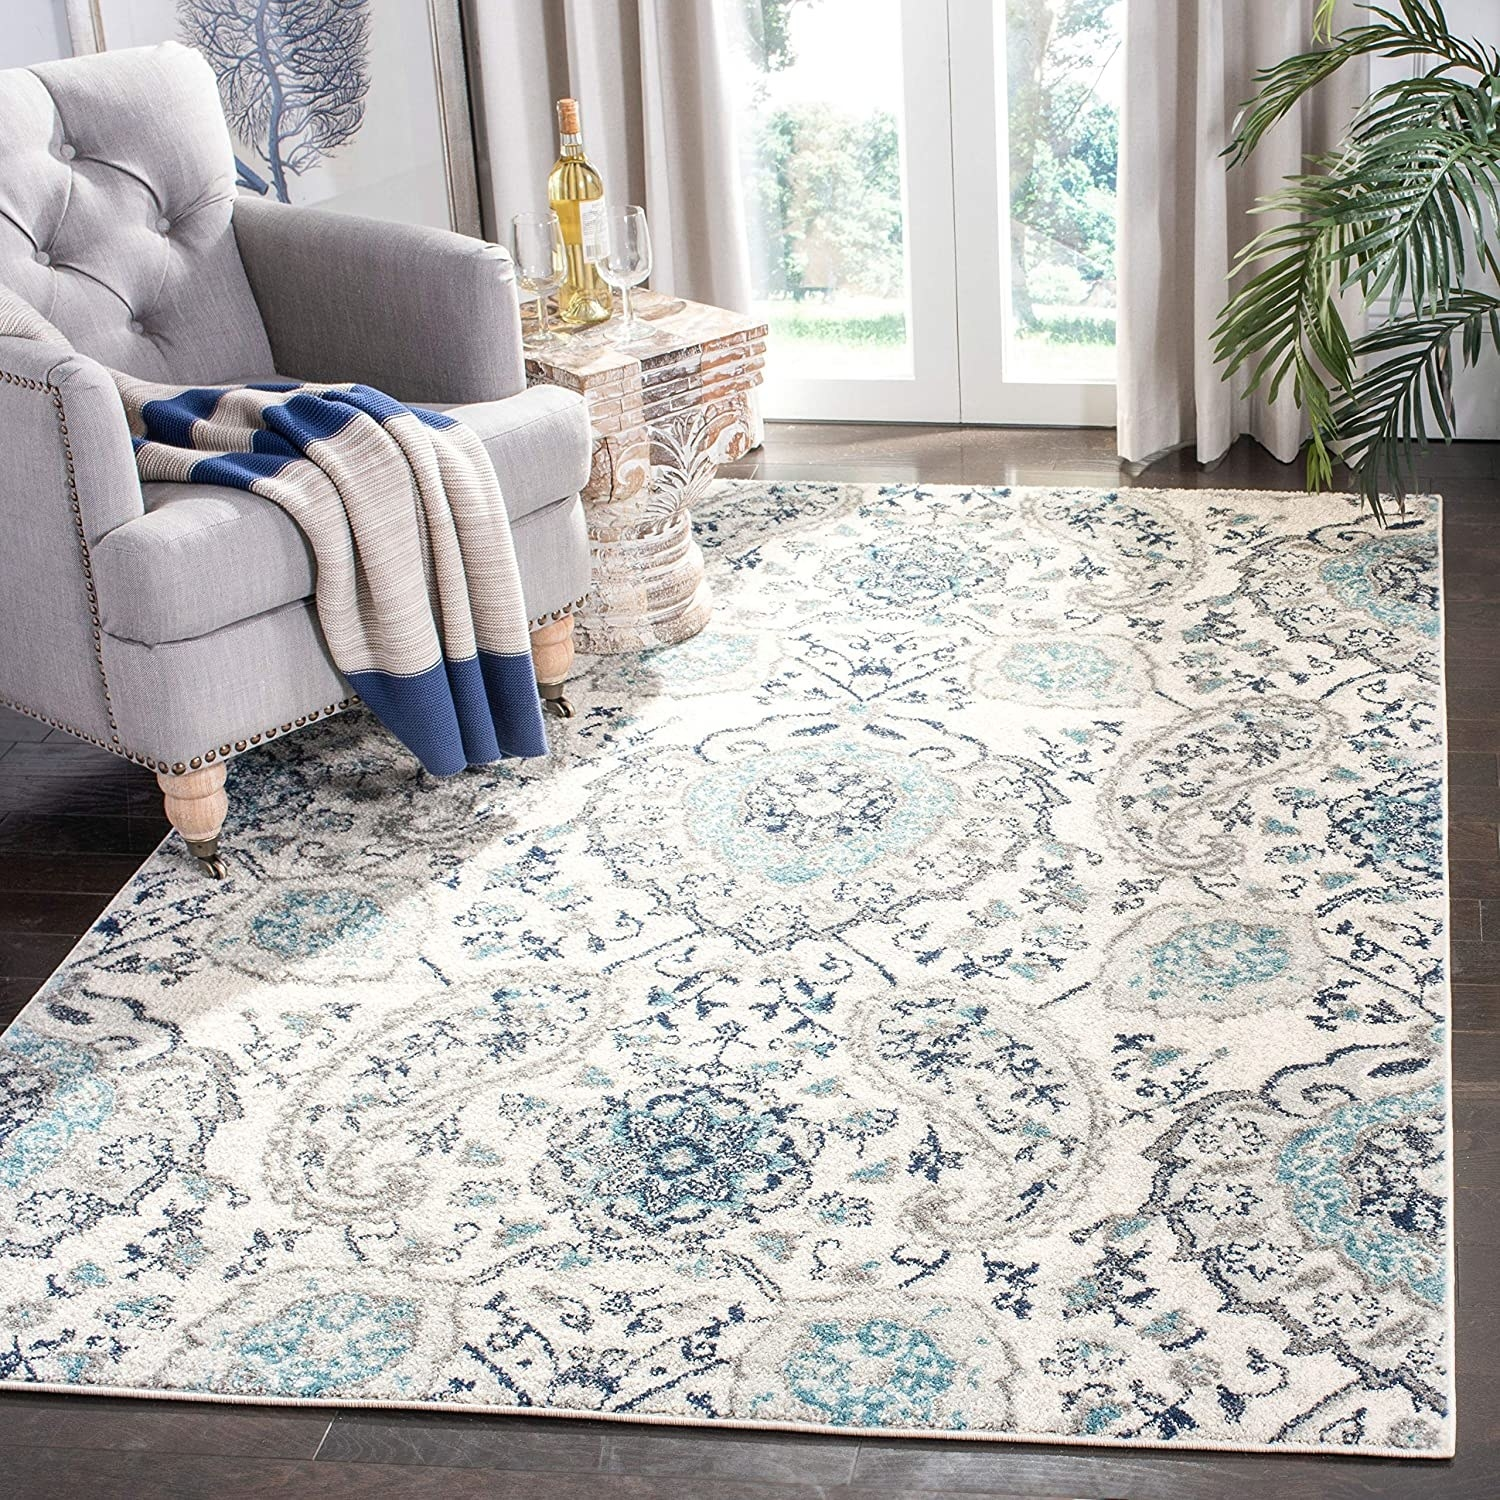 A bohemian, somewhat paisley patterned rug that is blue and white in a living room